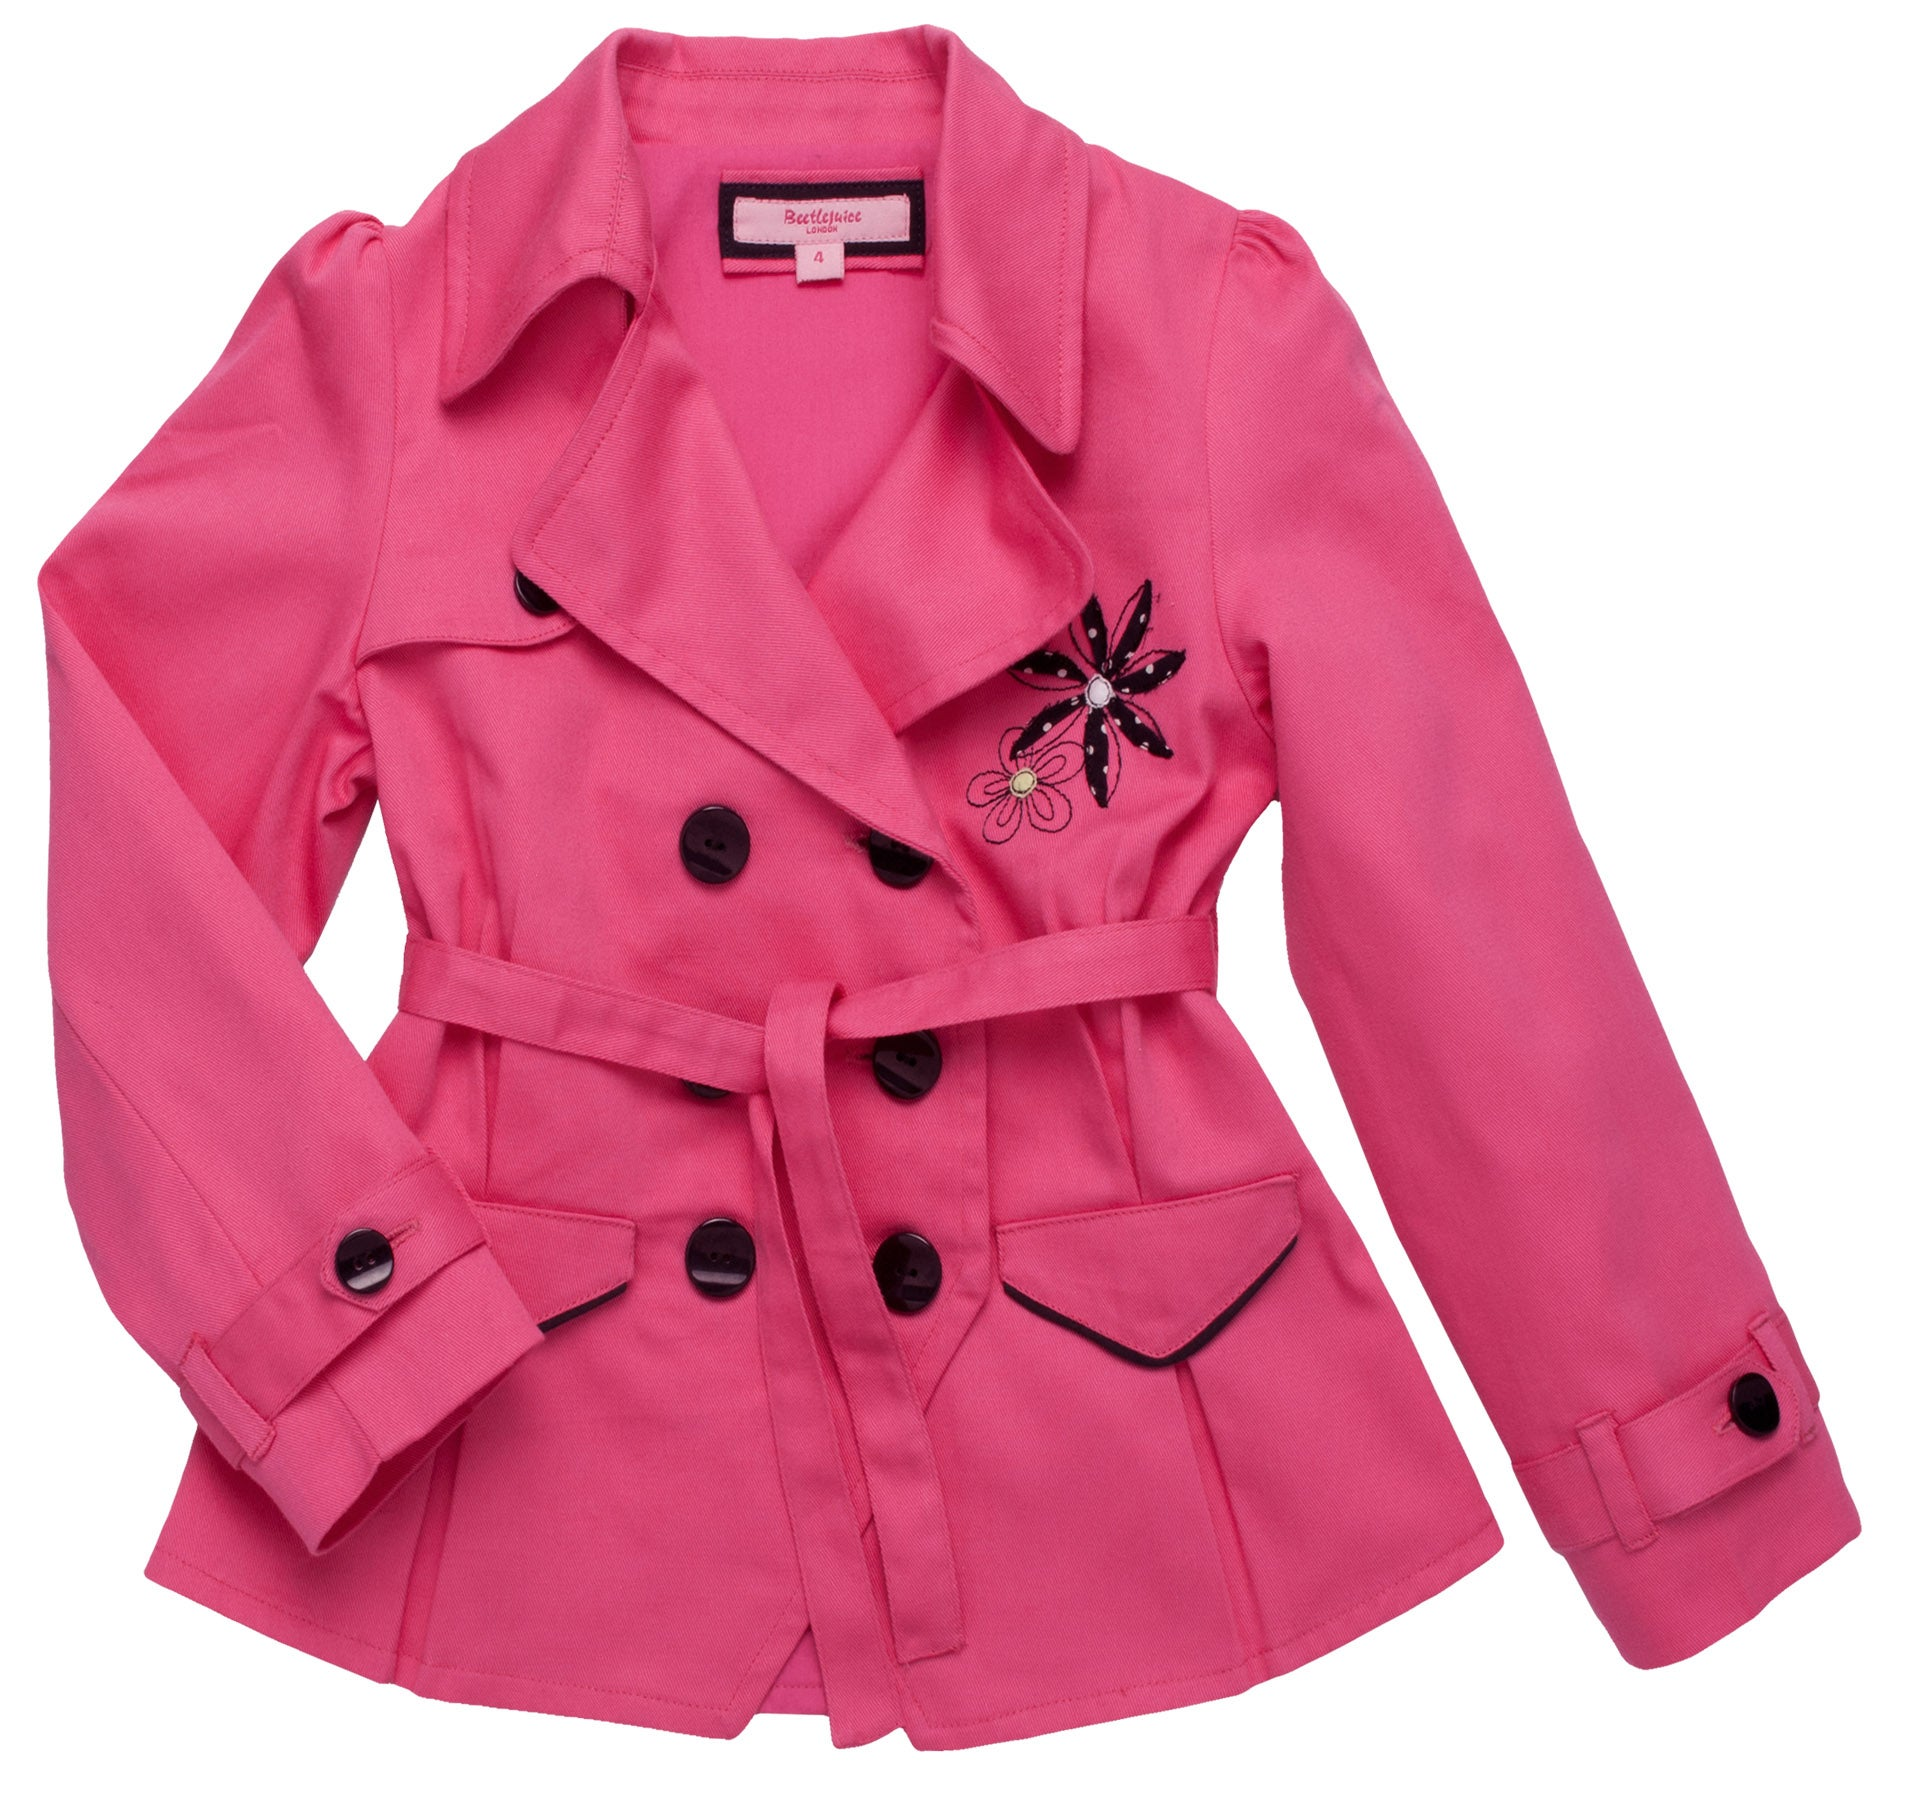 Beetlejuice London Girls Pink Cotton Jacket